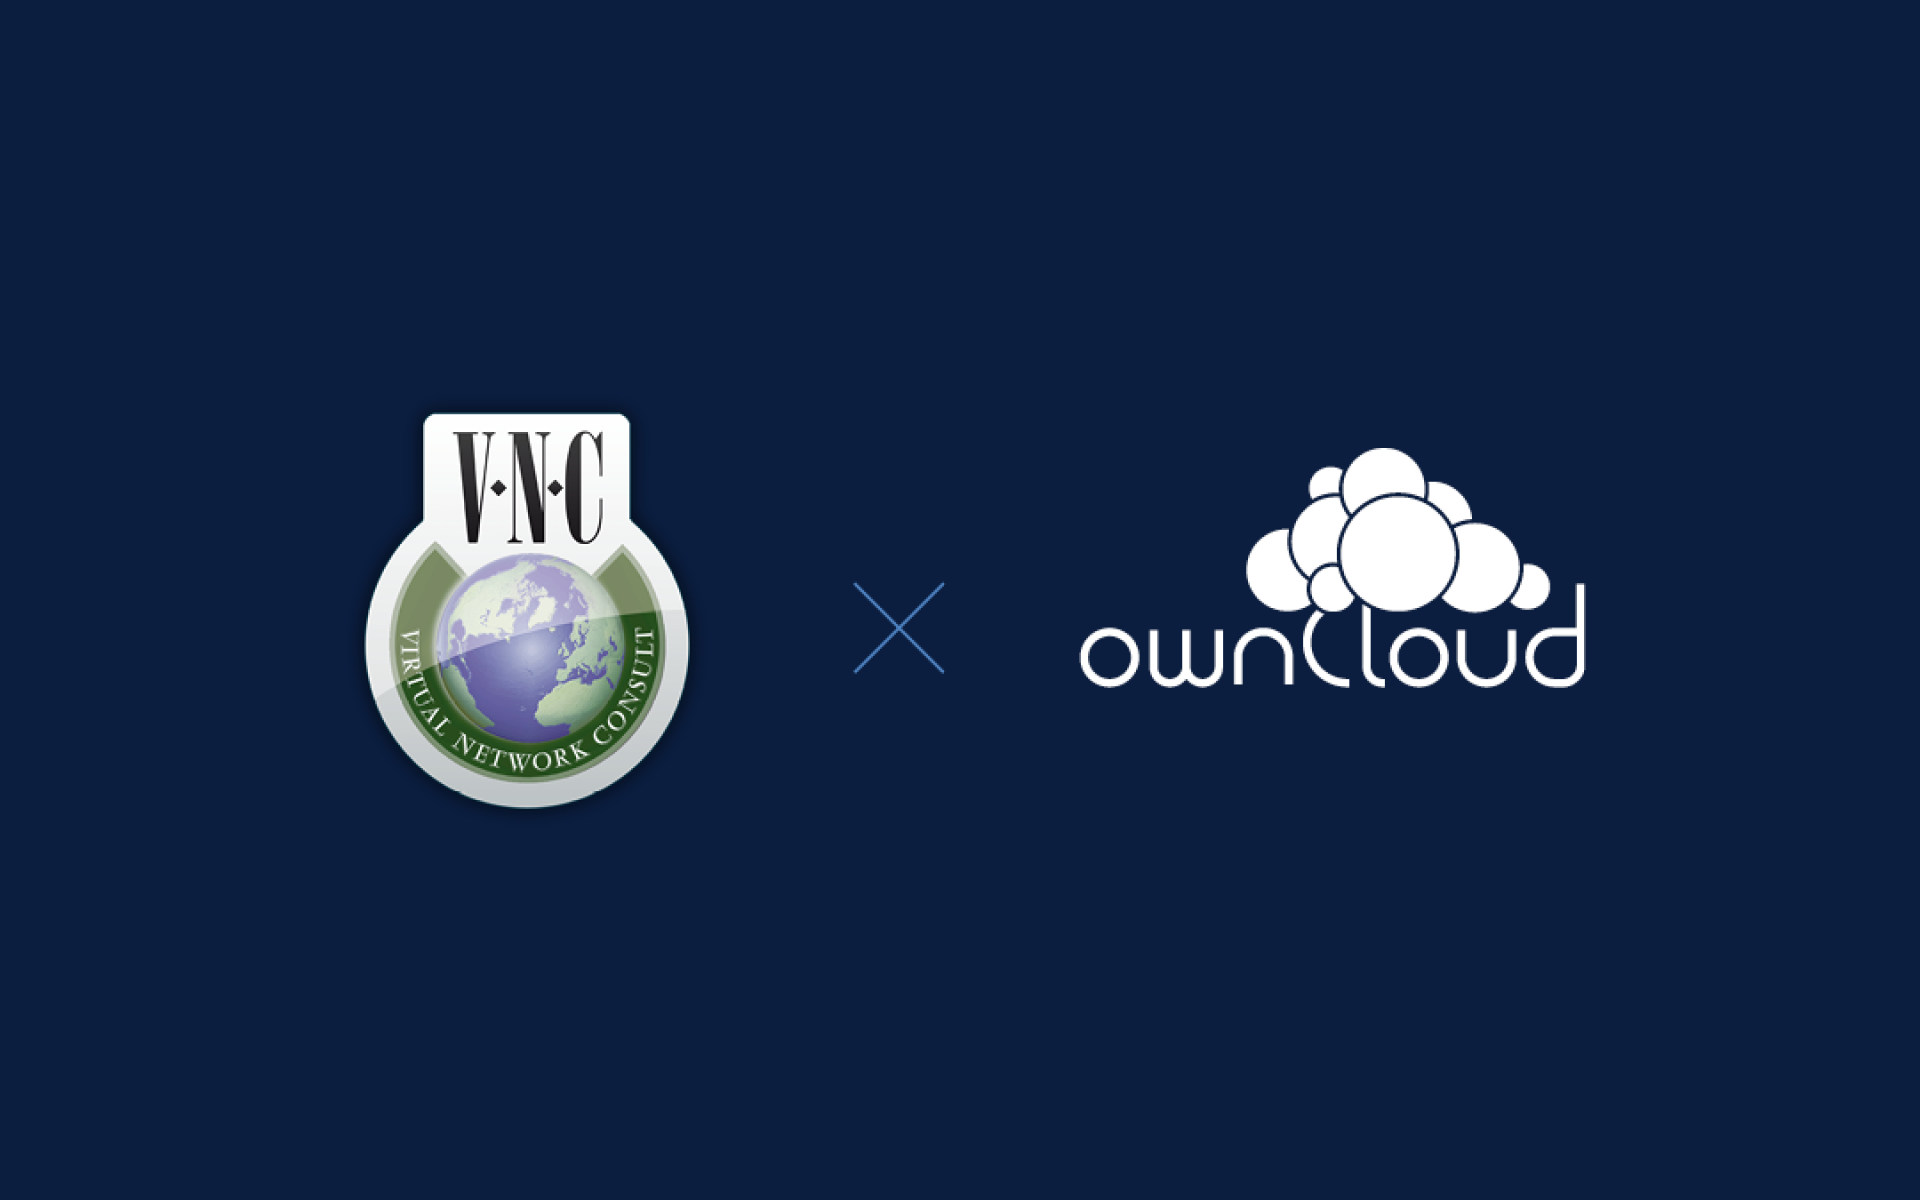 VNC and ownCloud announce new strategic partnership, integrating VNCLagoon and ownCloud